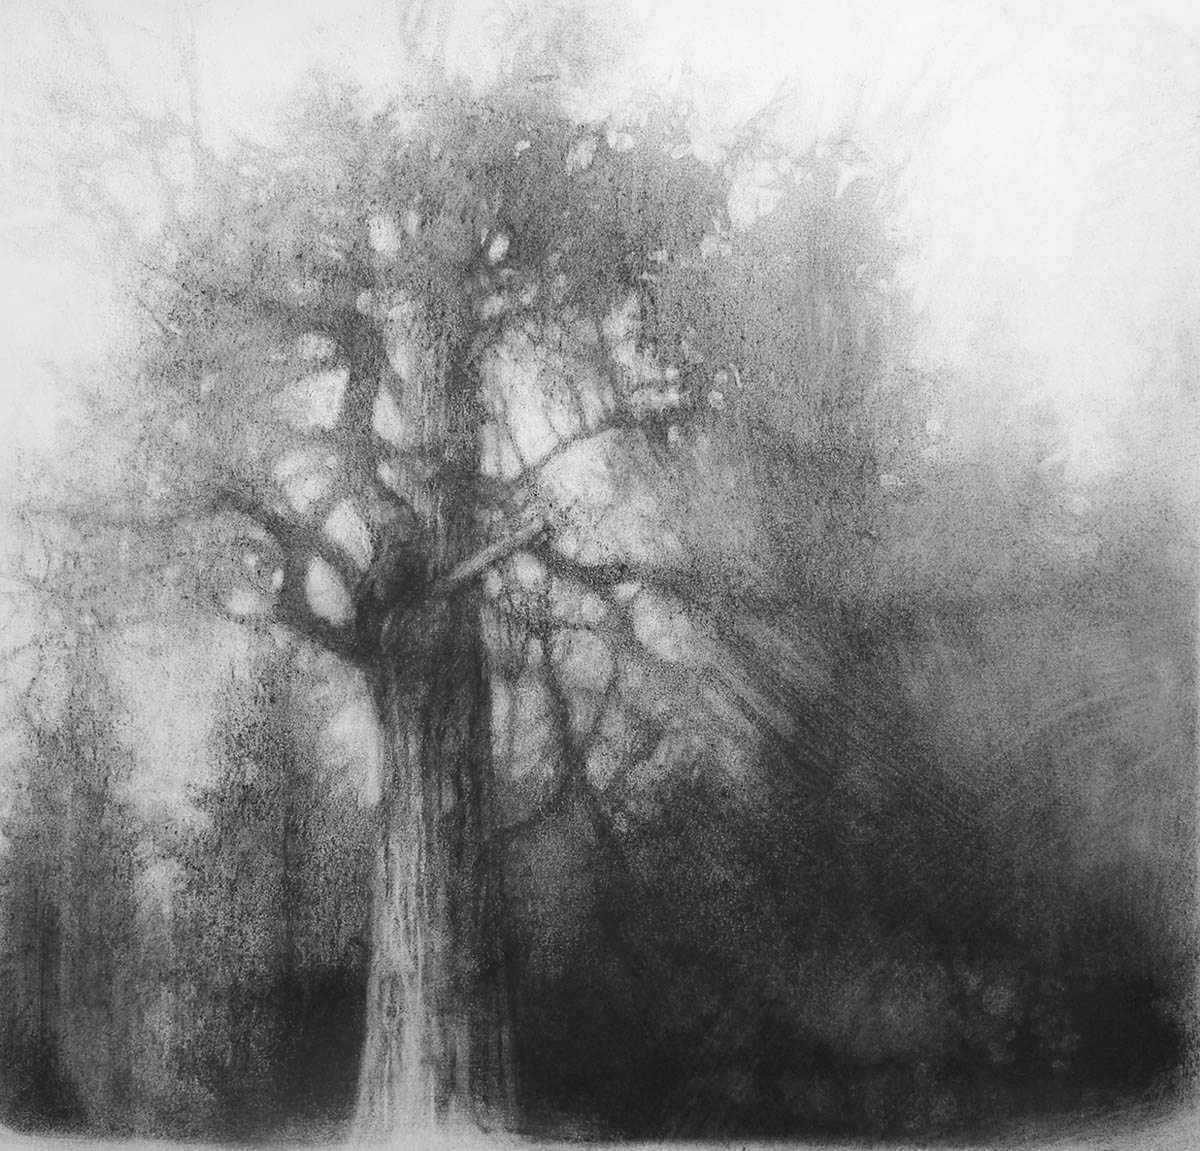 Charcoal drawing of a tree by Elaine Green.